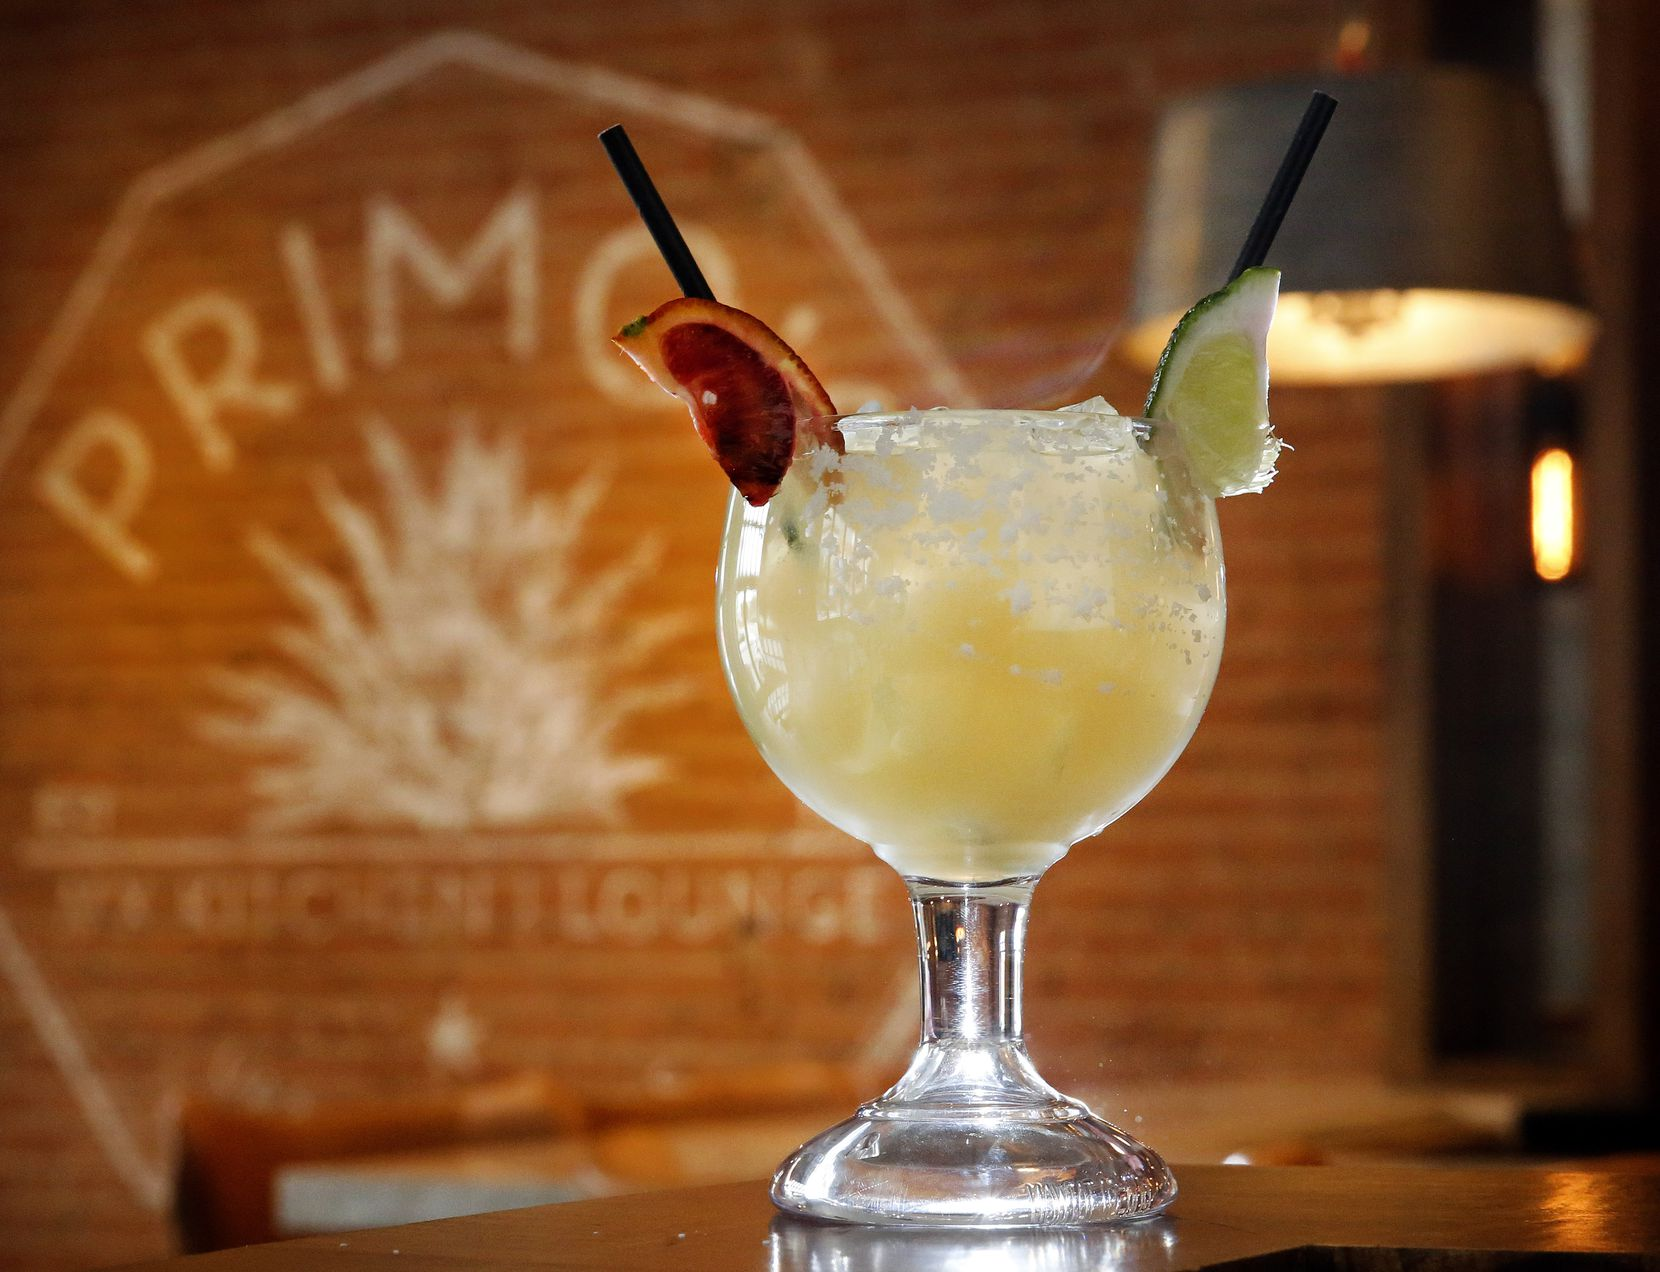 Not to worry: The new Primo's will have margaritas.